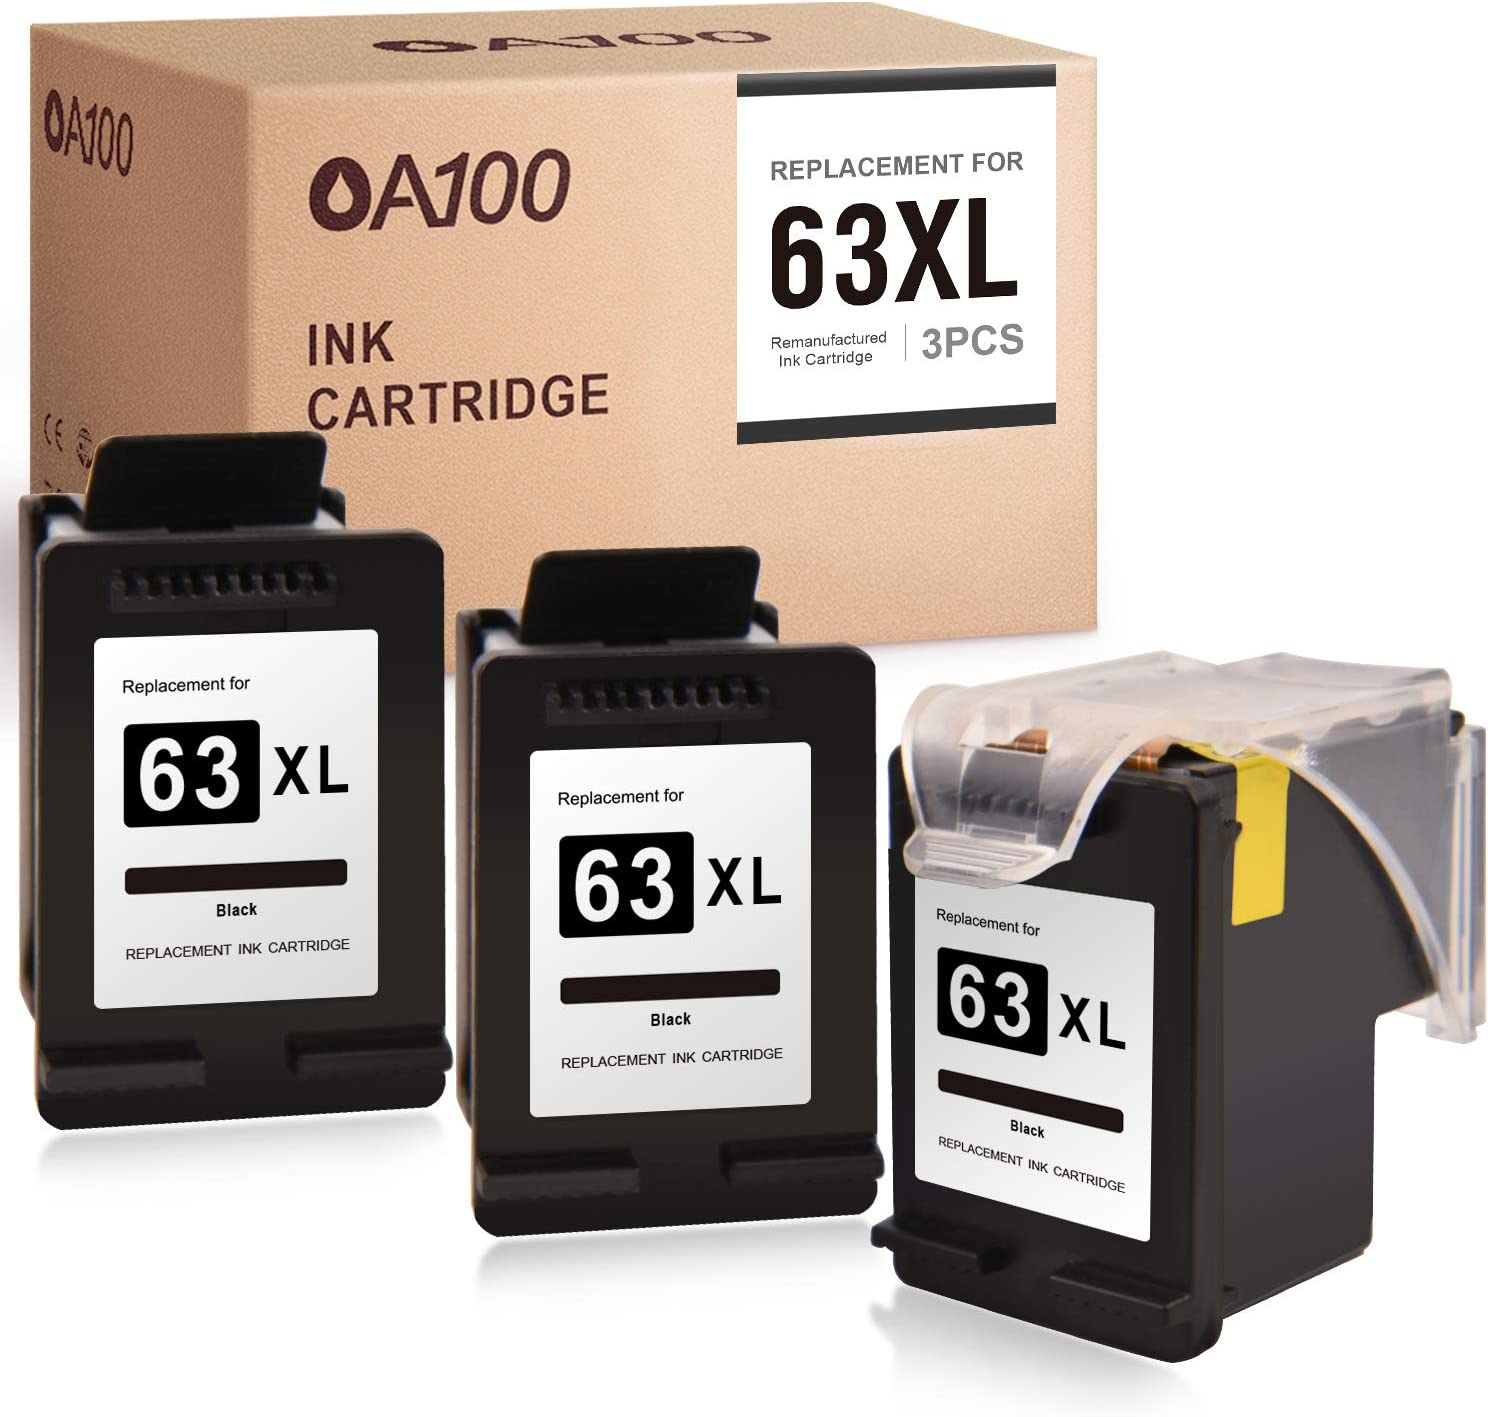 OA100 Remanufactured Ink Cartridge Replacement for HP 63 63XL for Officejet 3830 5255 4650 5258 4655 5200 Envy 4520 4512 (Black, 3 Pack)